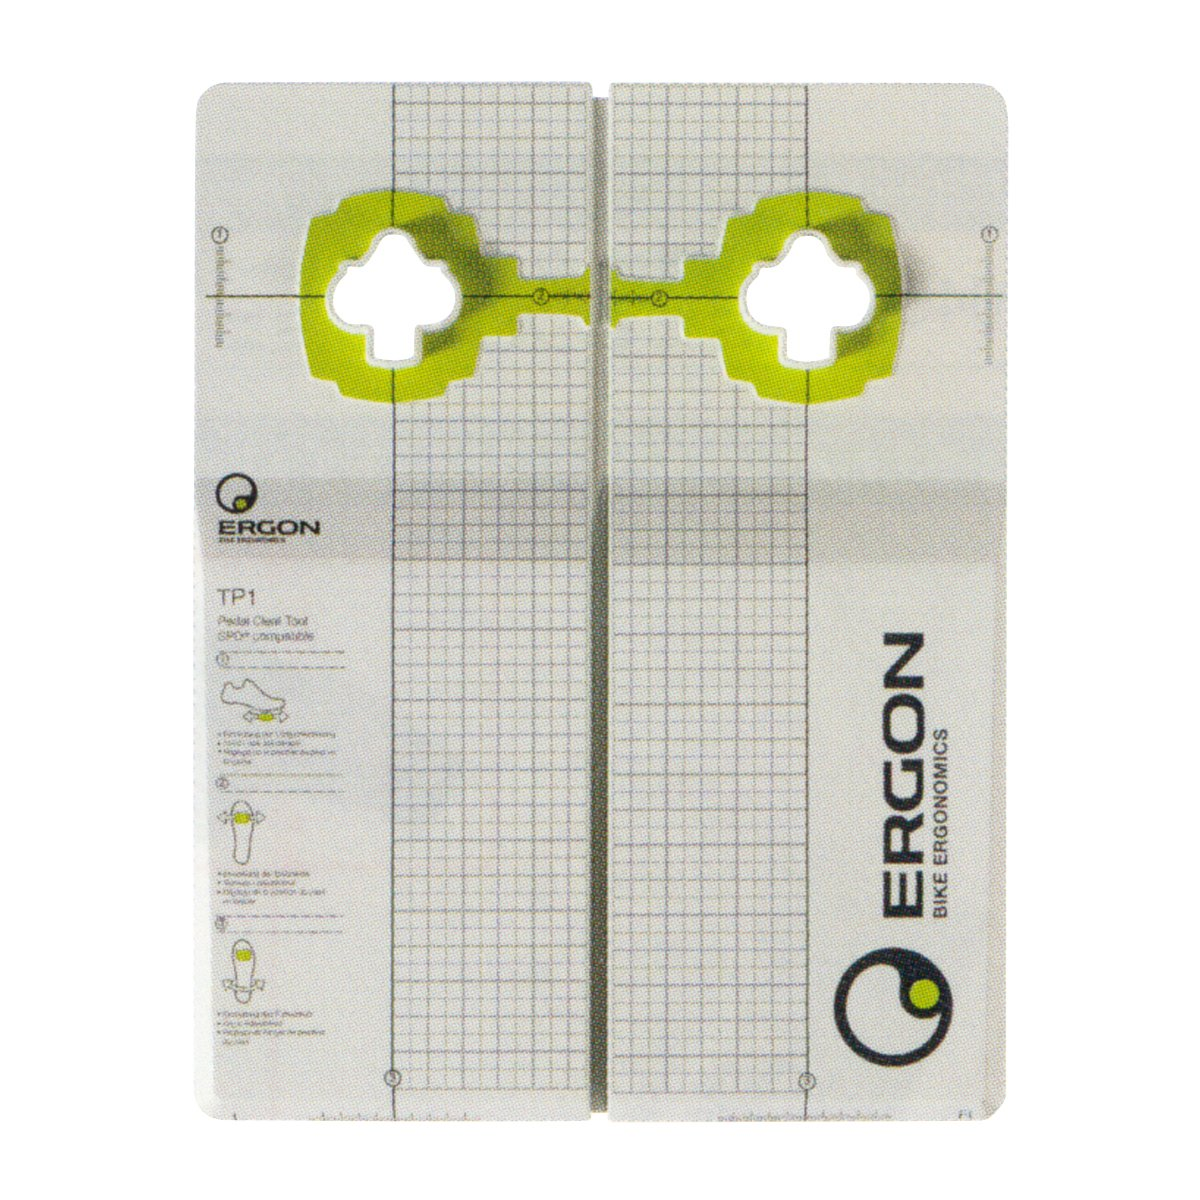 Ergon TP1 Pedal Cleat Tool for Shimano SPD